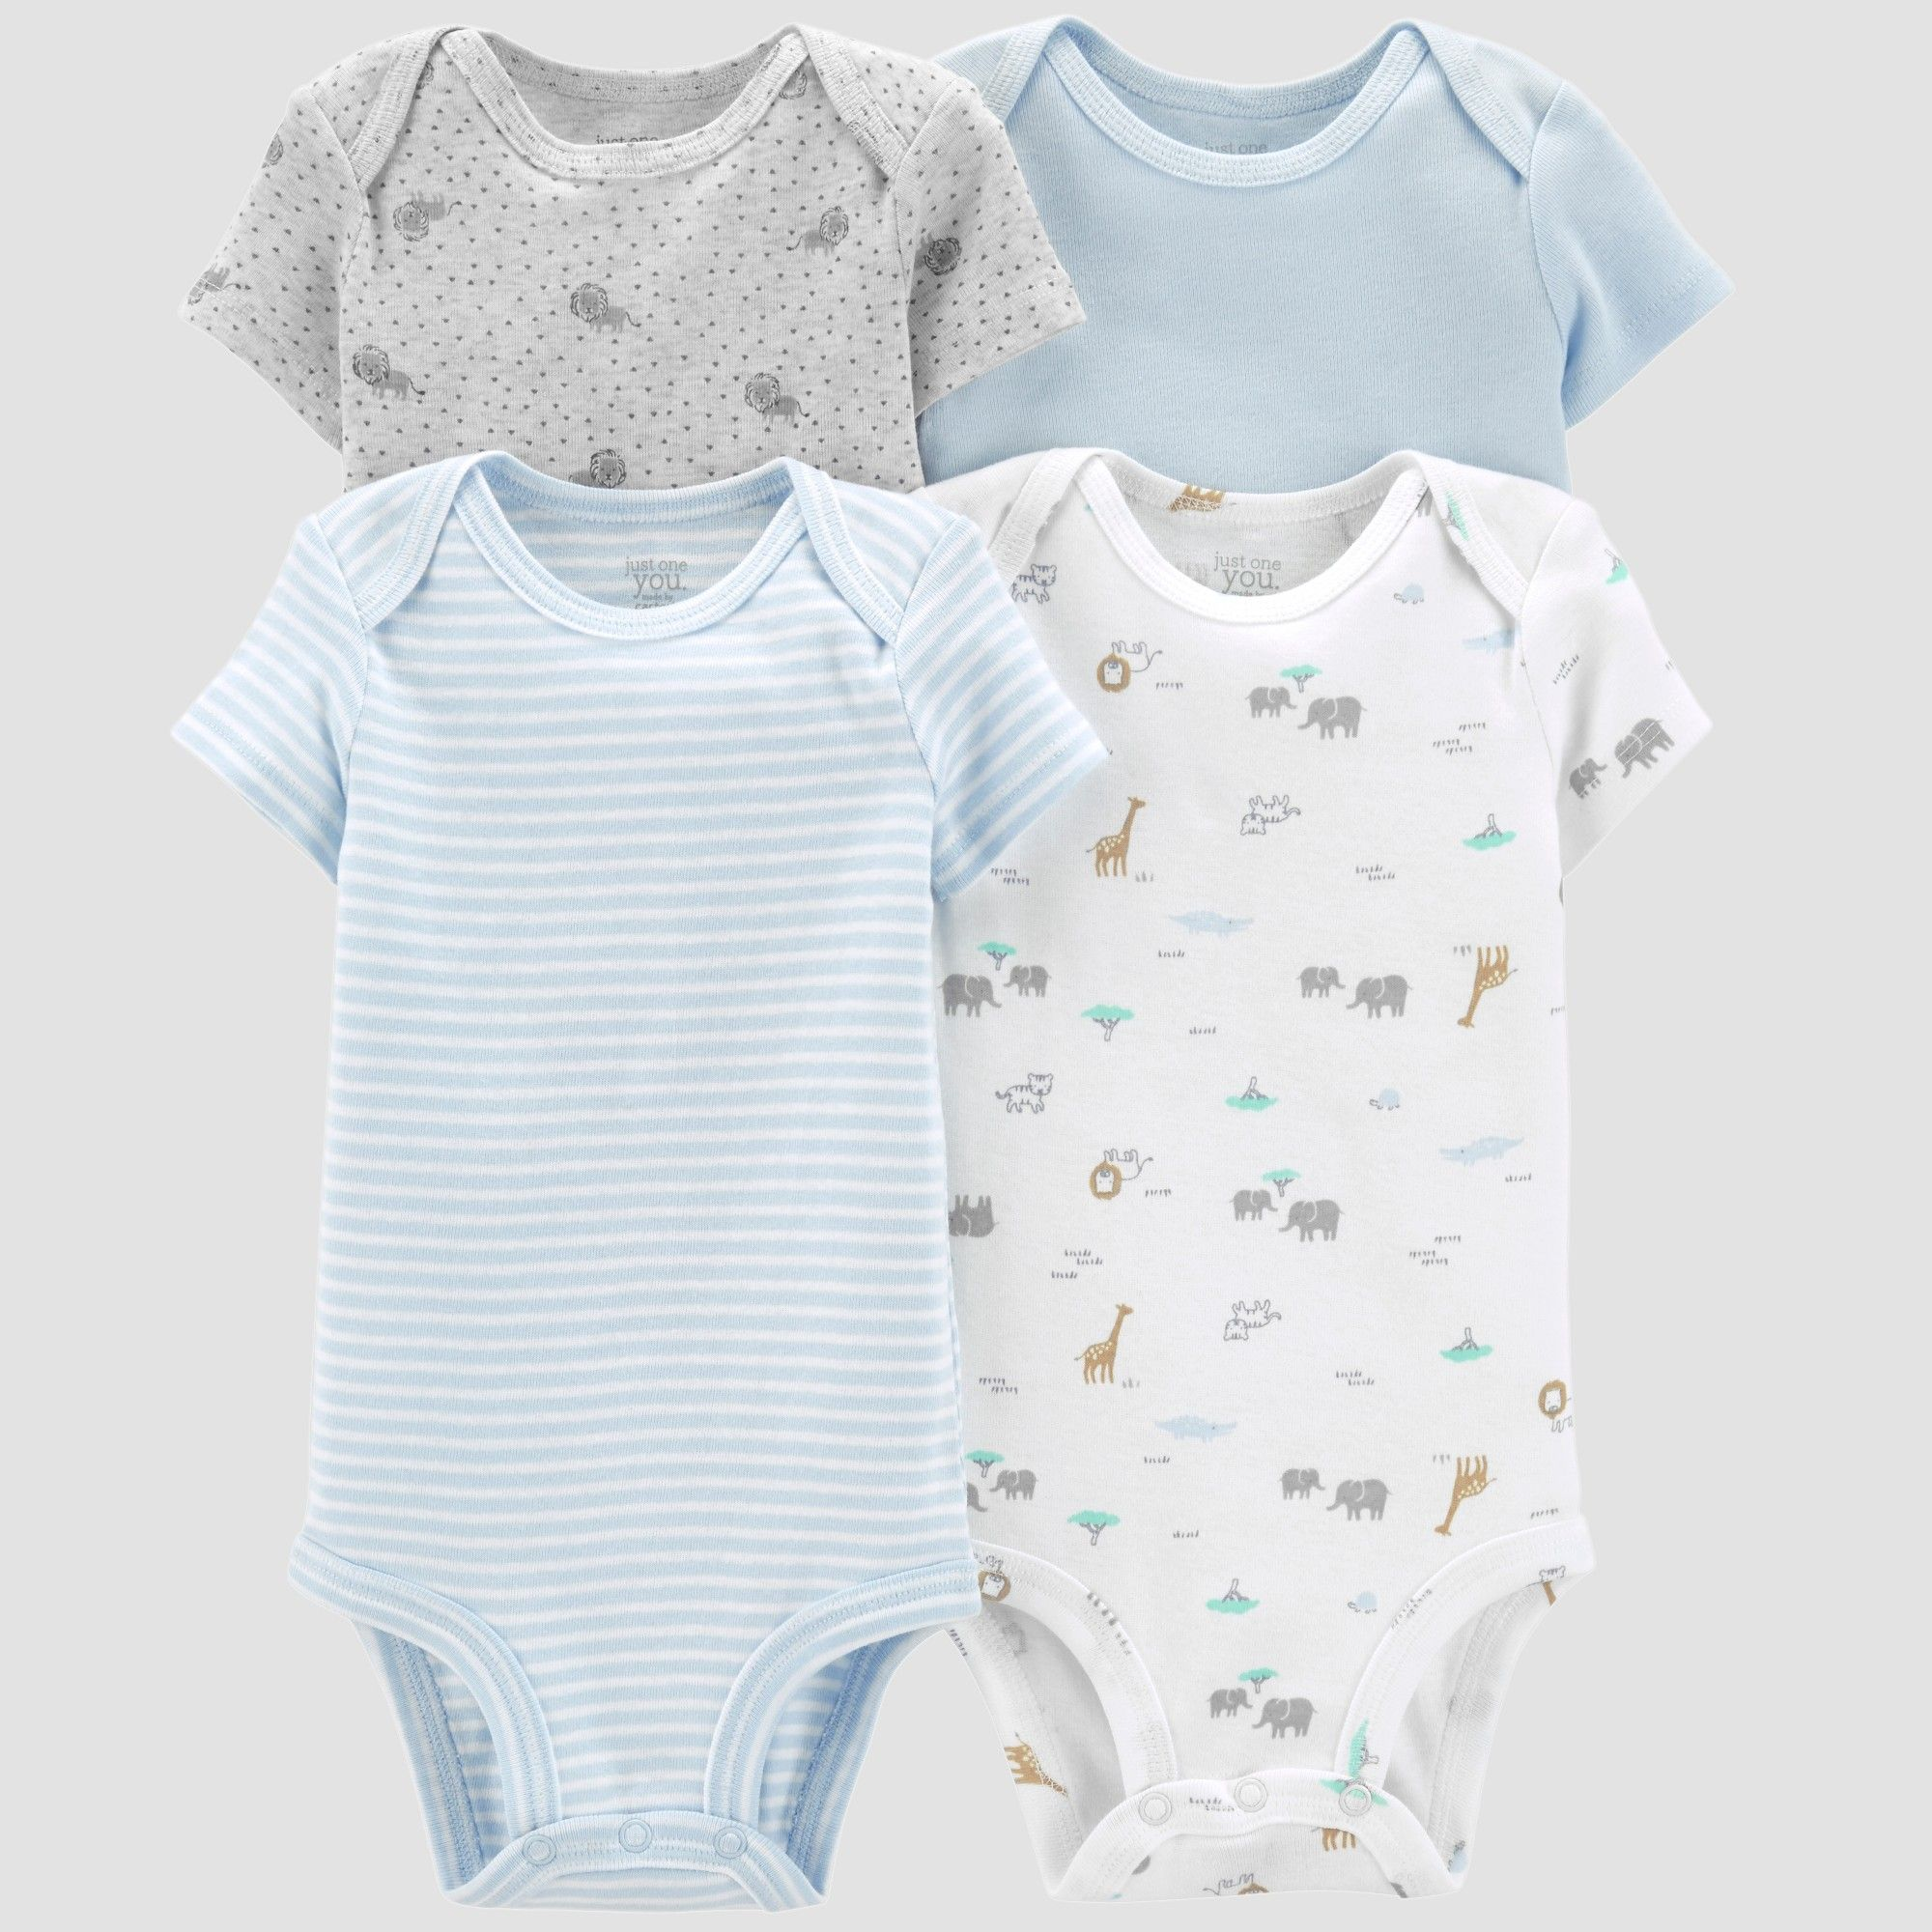 bc36e21fe Little Plant Organic by carter's Baby Boys' 4pk Bodysuits - Blue/Gray/White  Newborn. Baby Boys' 4pk Bodysuits - Just One You made ...